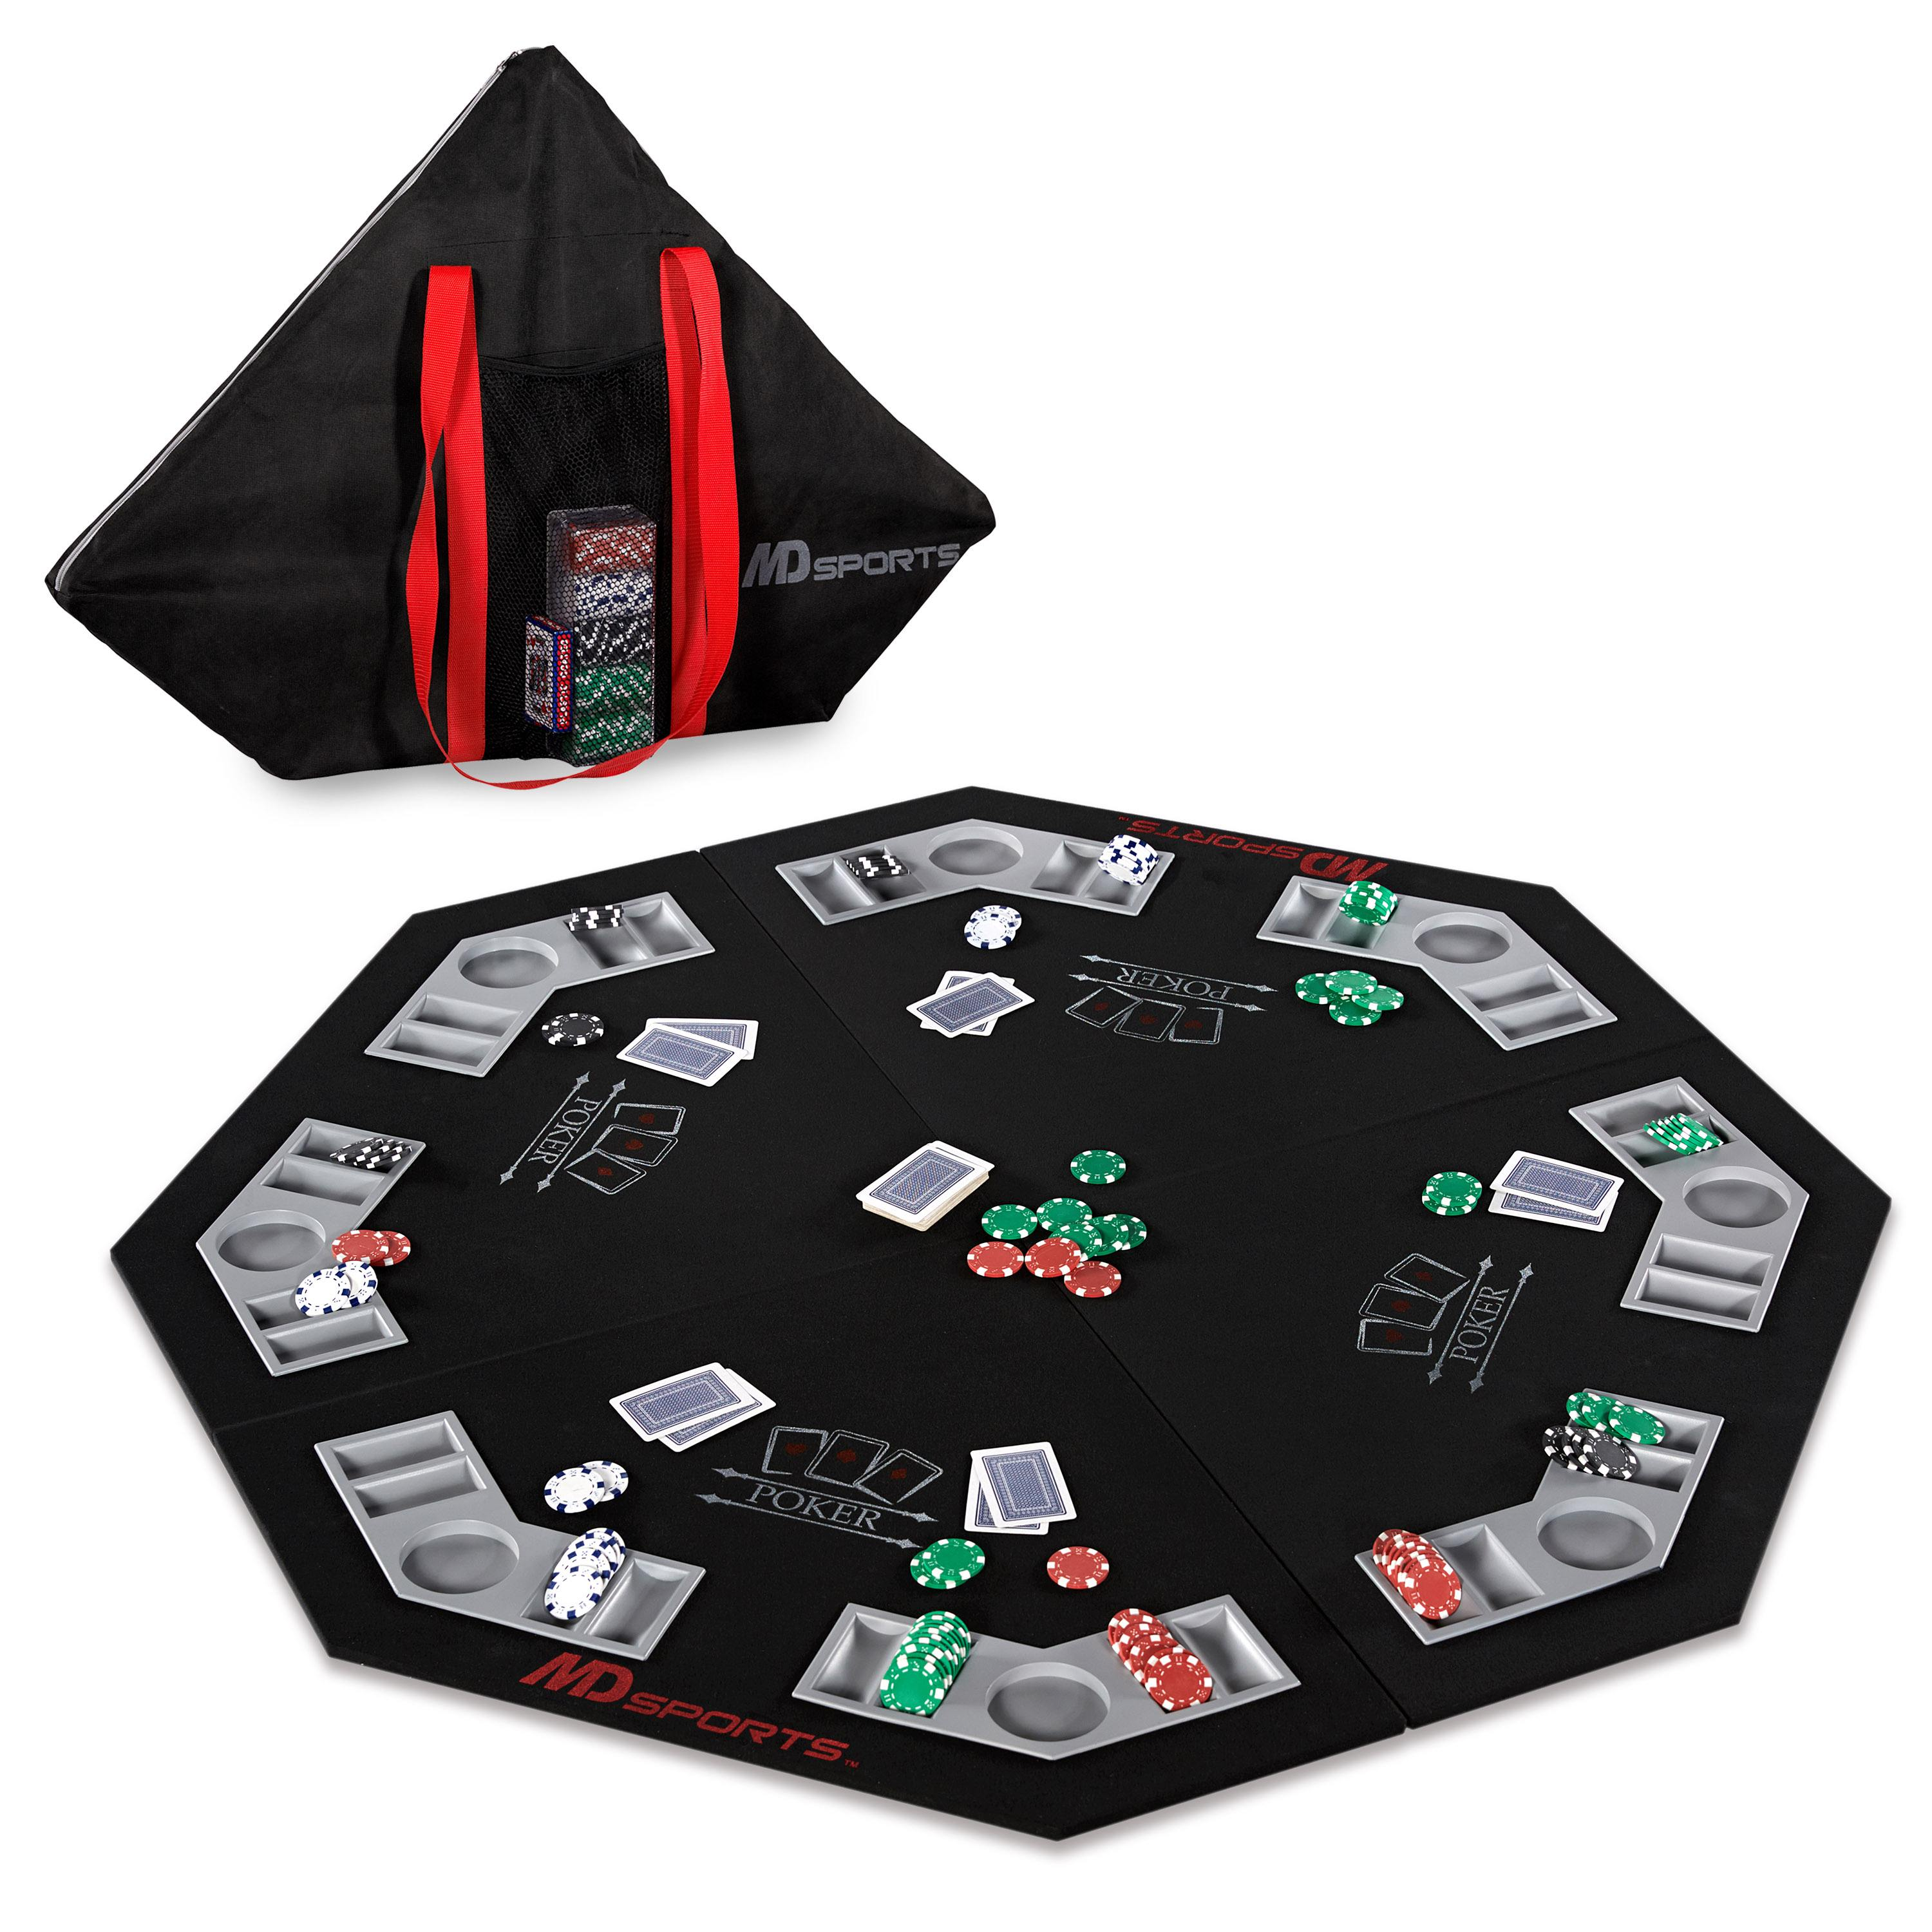 Md Sports 8 Player Poker Conversion Top Md Sports